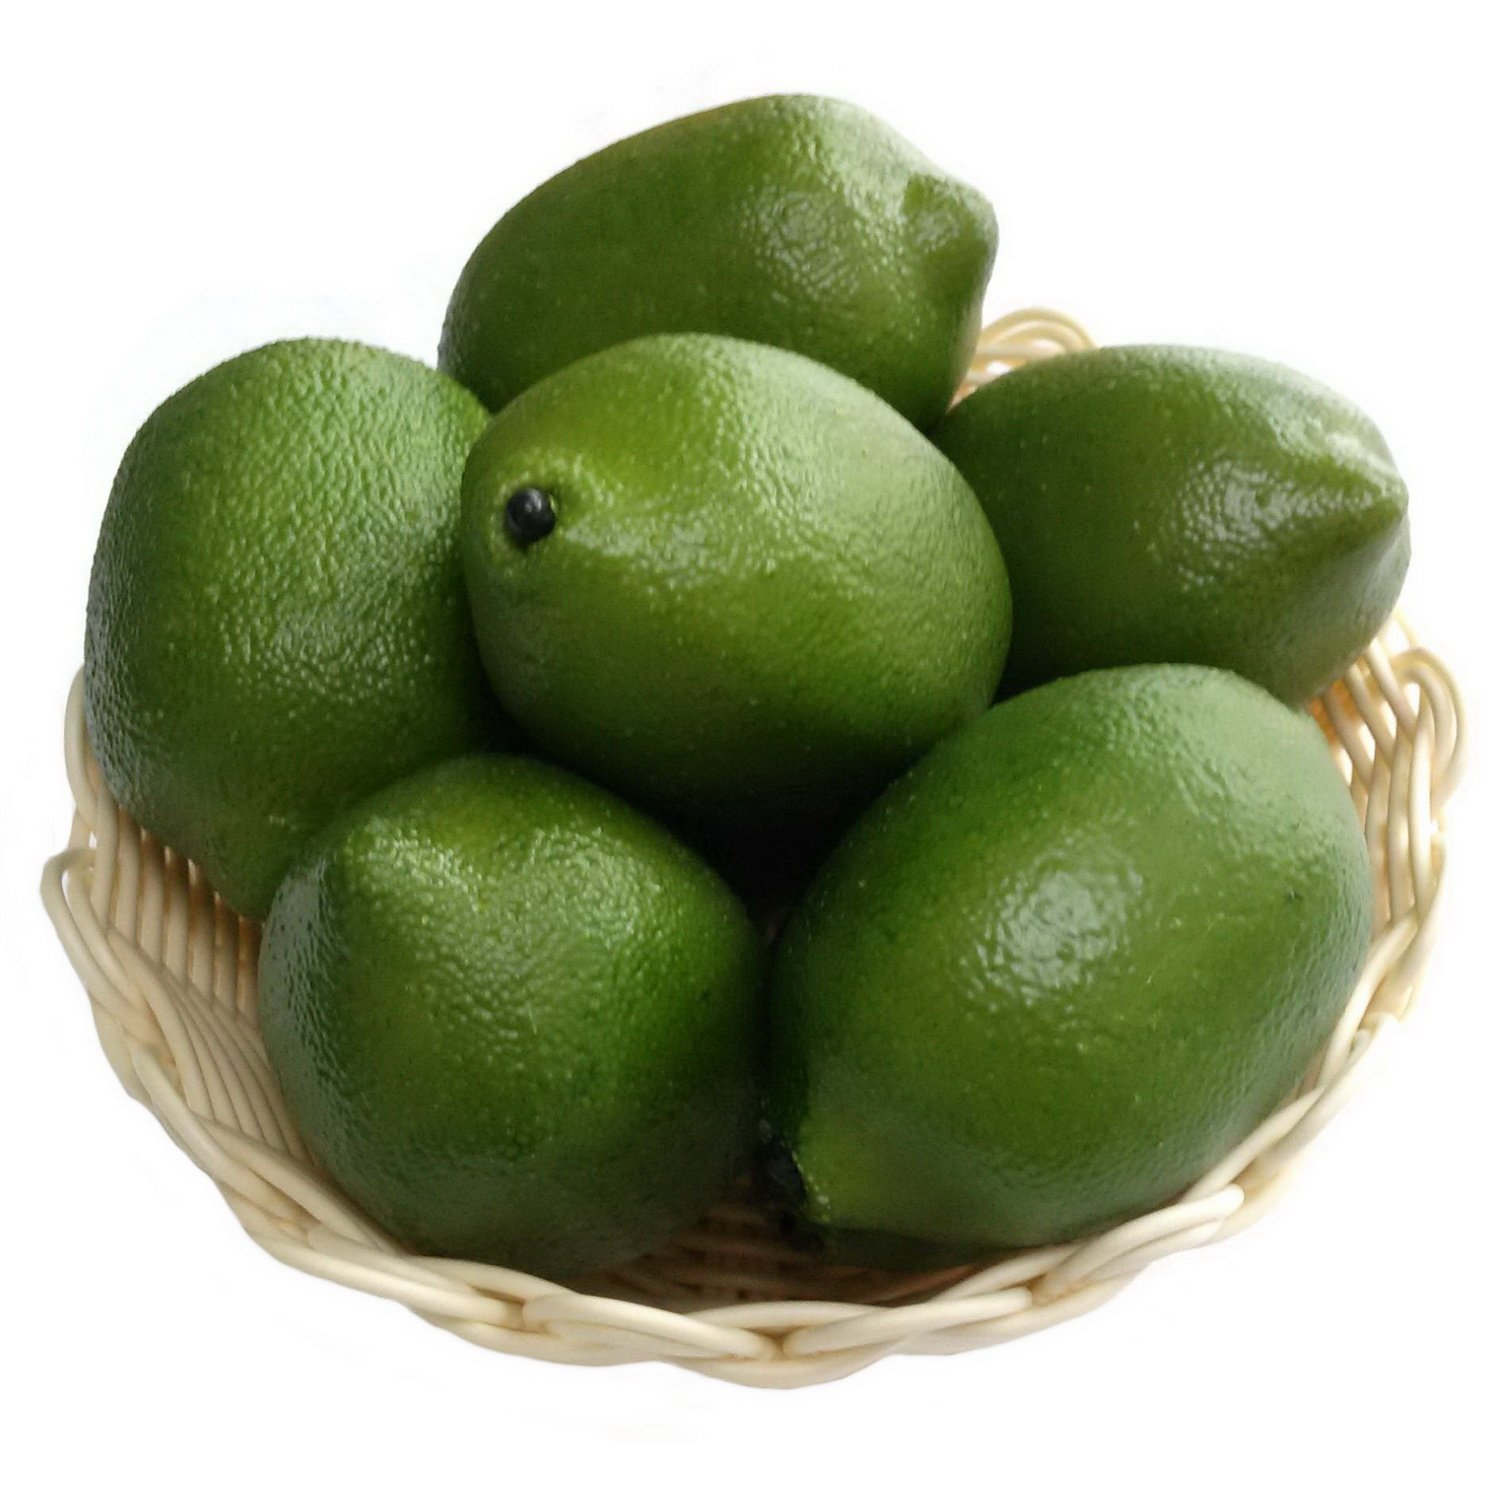 Runfon 4 Large Best Artificial Limes Decorative Fruit by Best Artificial Home decoration